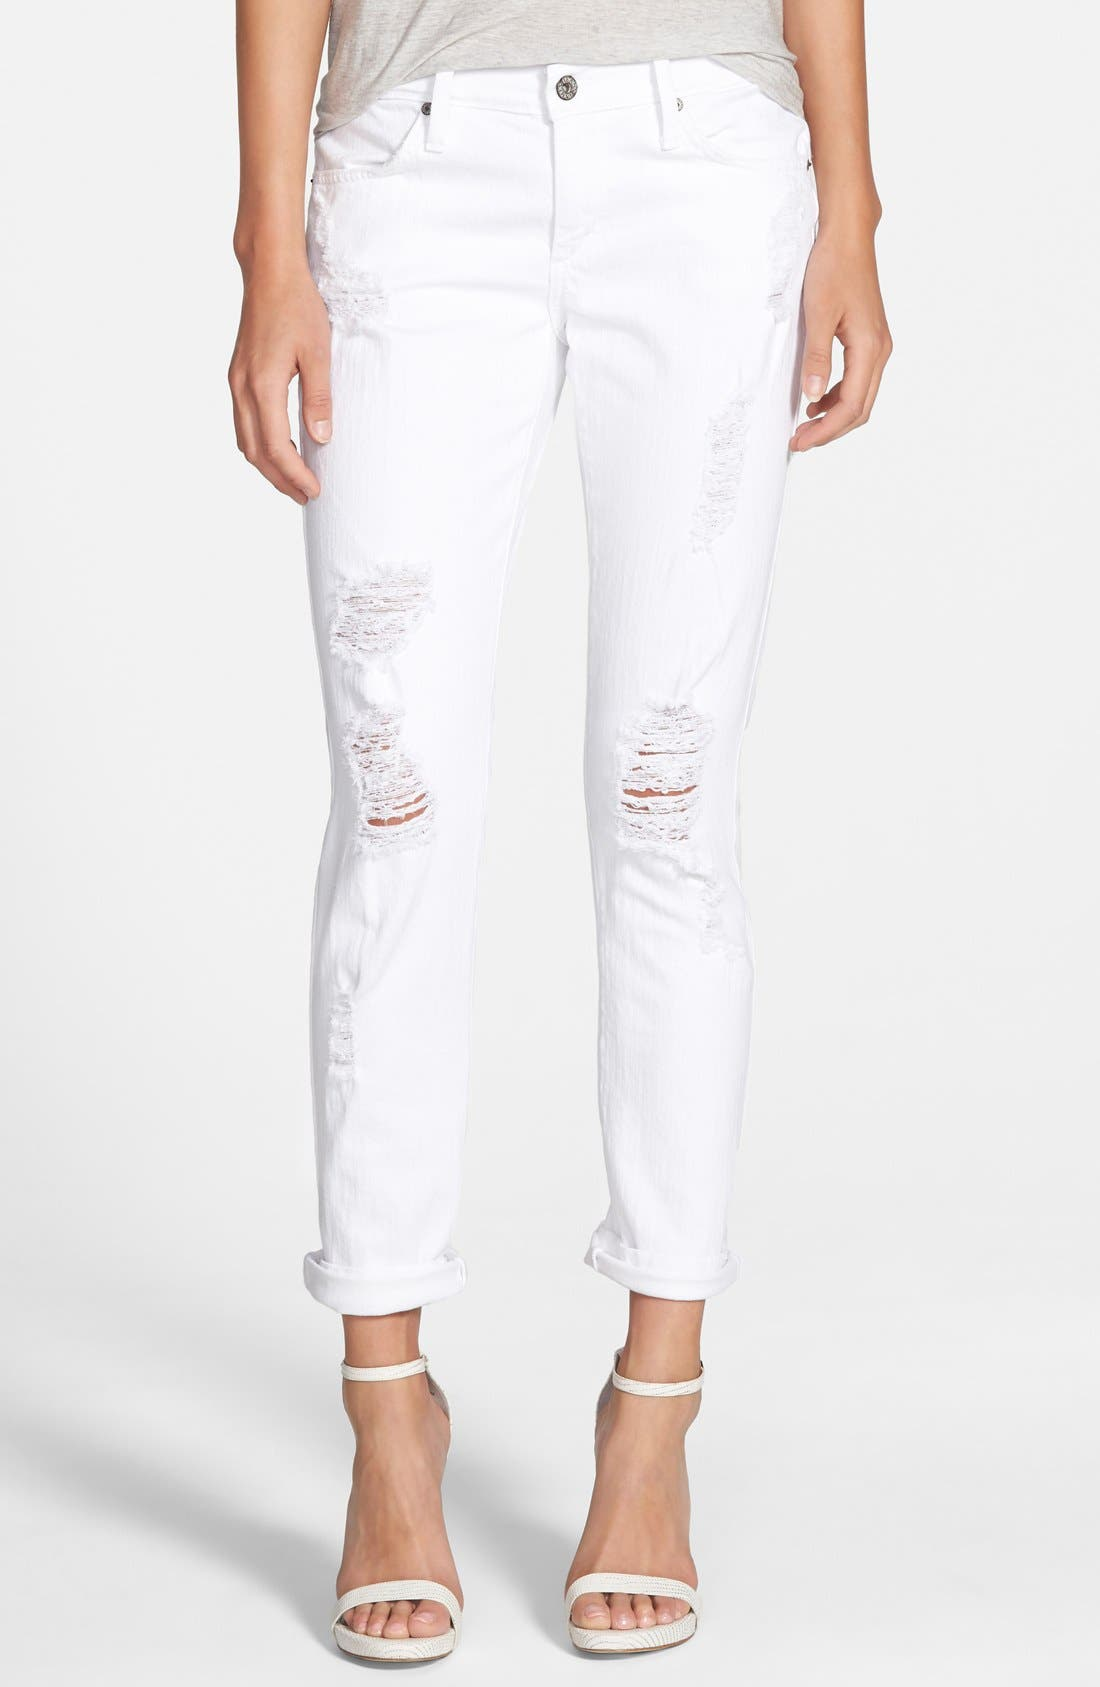 Alternate Image 1 Selected - James Jeans 'Neo Beau' Stretch Boyfriend Jeans (Destroyed White)